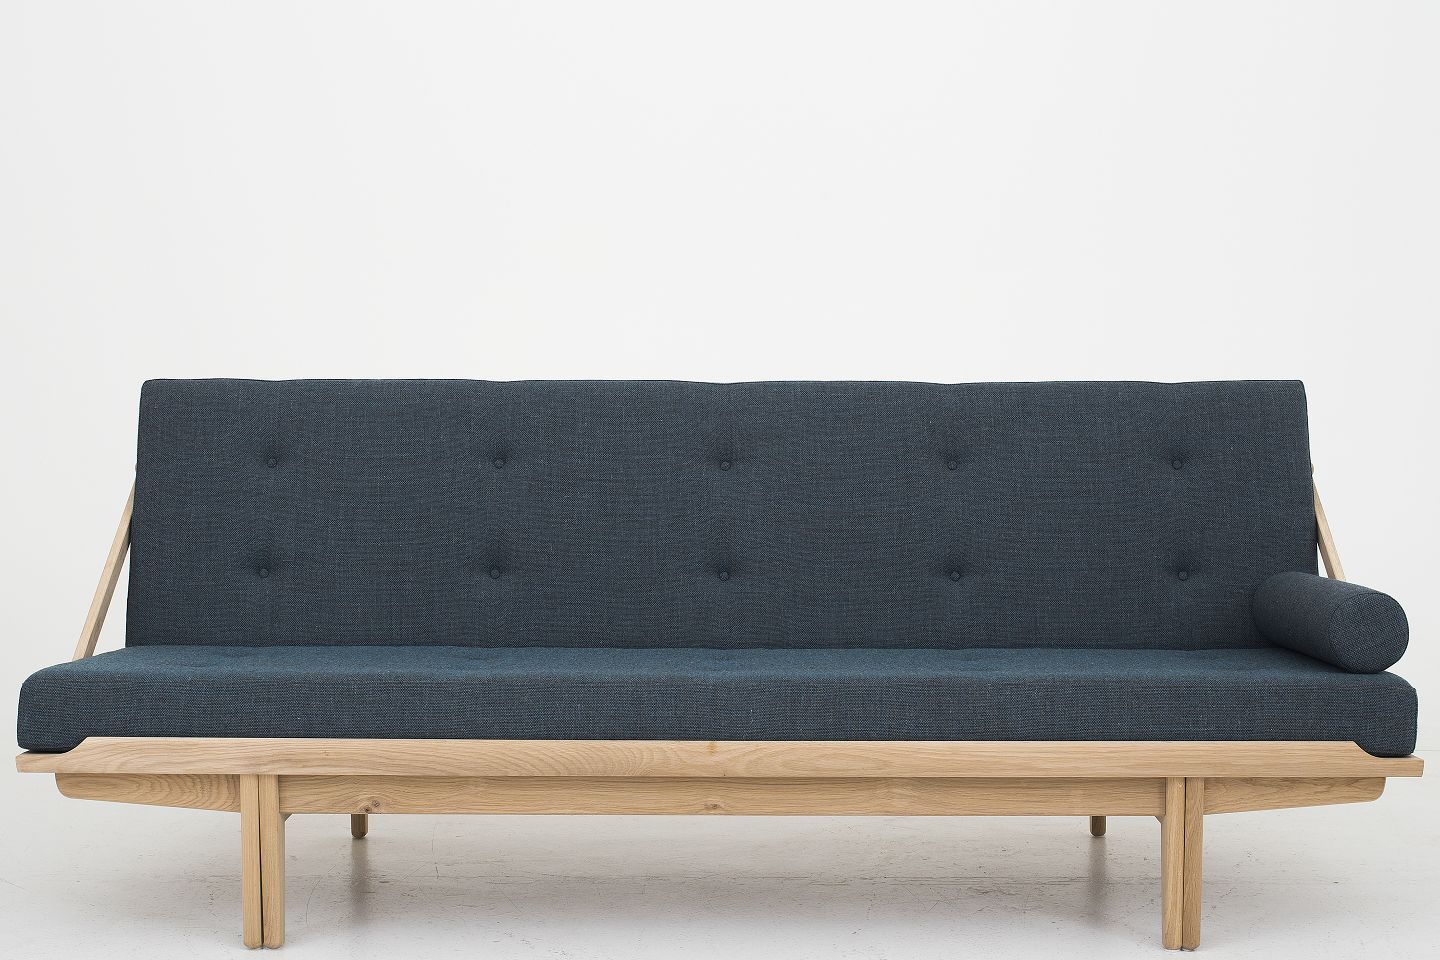 daybed. Daybed In Oak With Cushions Clara 2, 884 From Kvadrat. Condition: New Availability: 6-8 Weeks